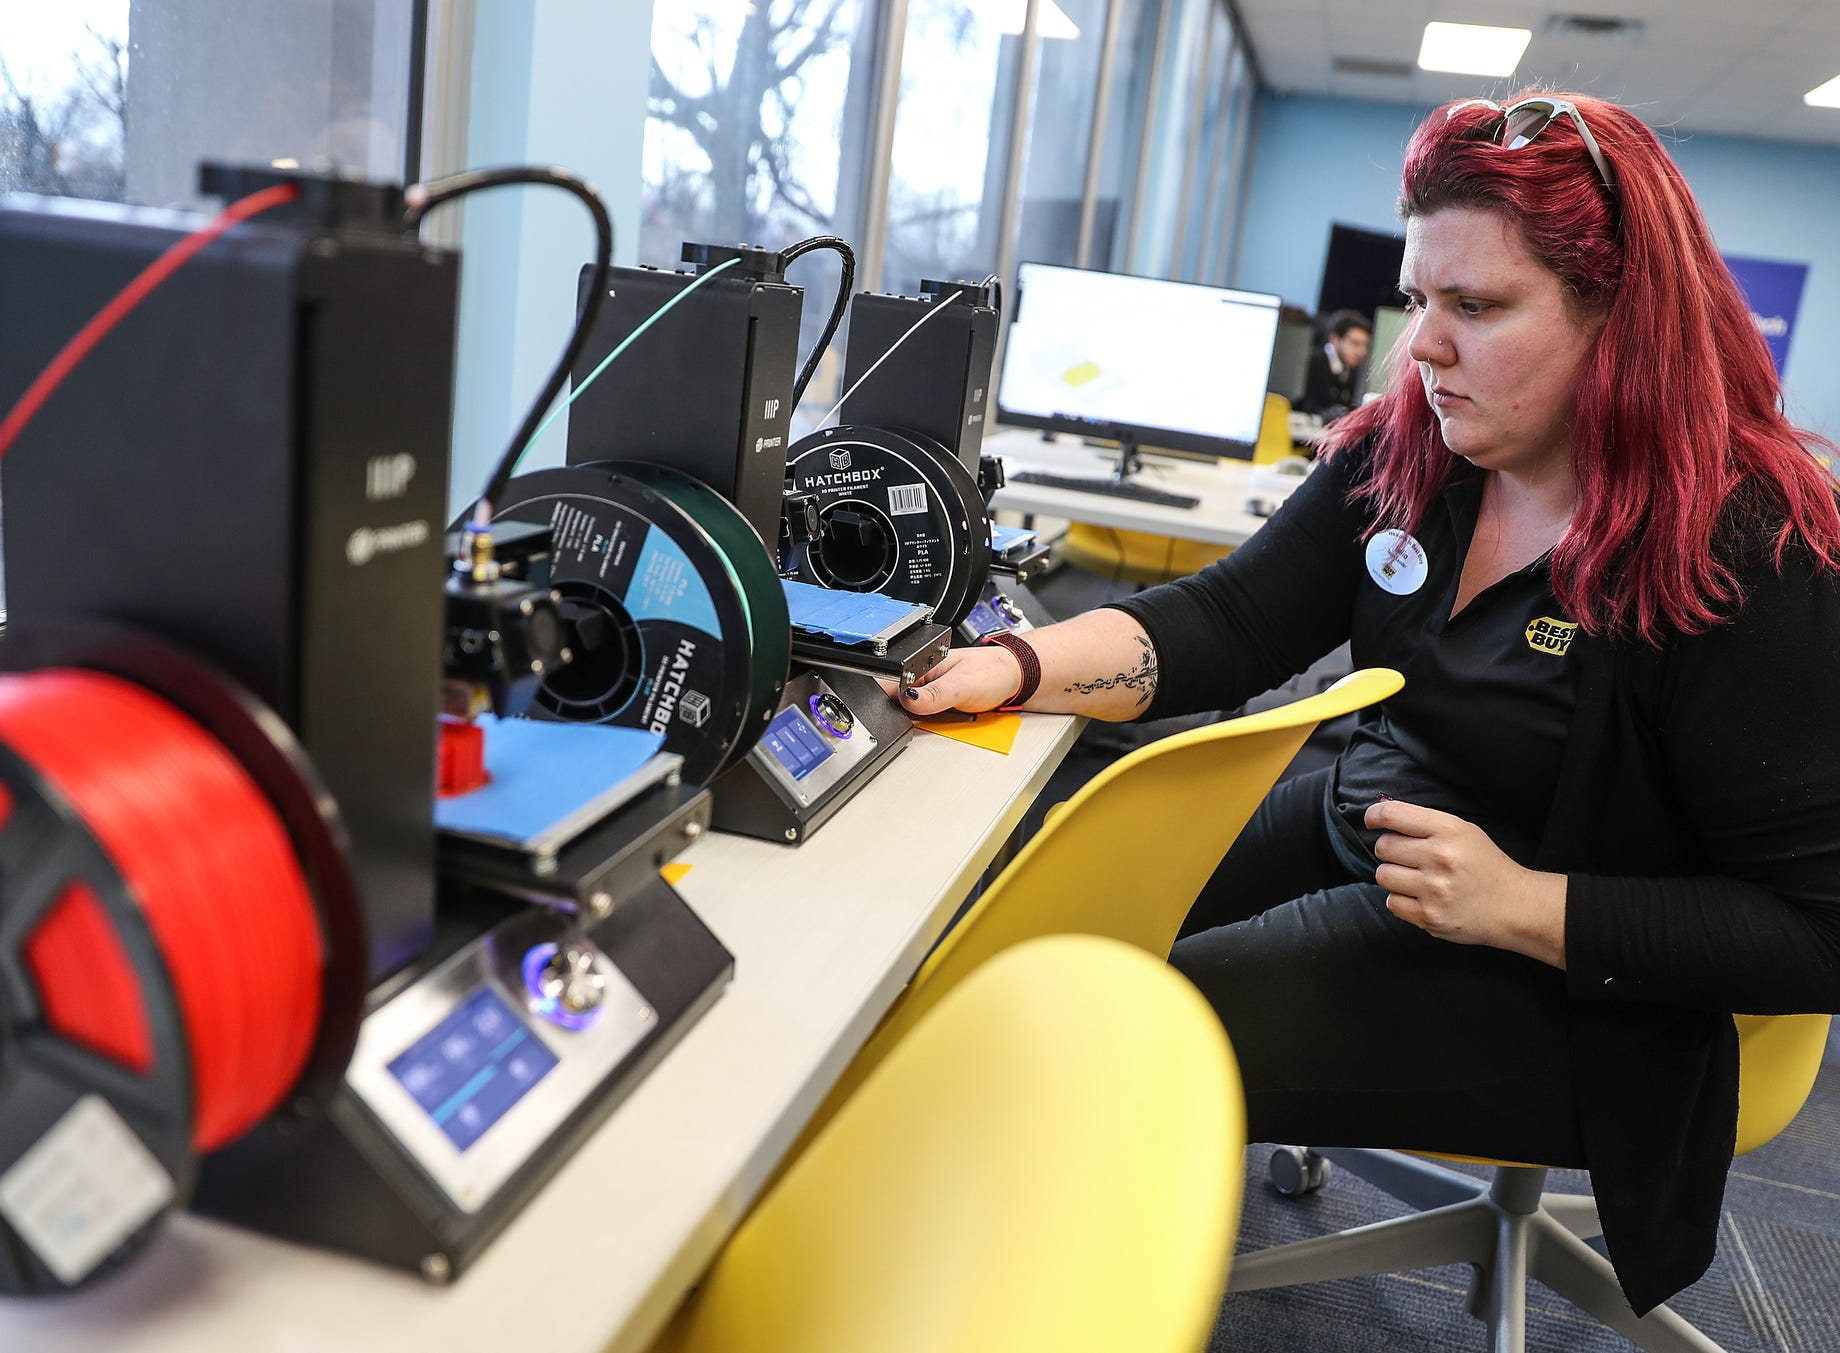 Lelia Pettigrew, from Best Buy, runs a 3-D printer during the opening of the Best Buy Teen Tech Center at the MLK Community Center in Indianapolis, Tuesday, Jan. 29, 2019.